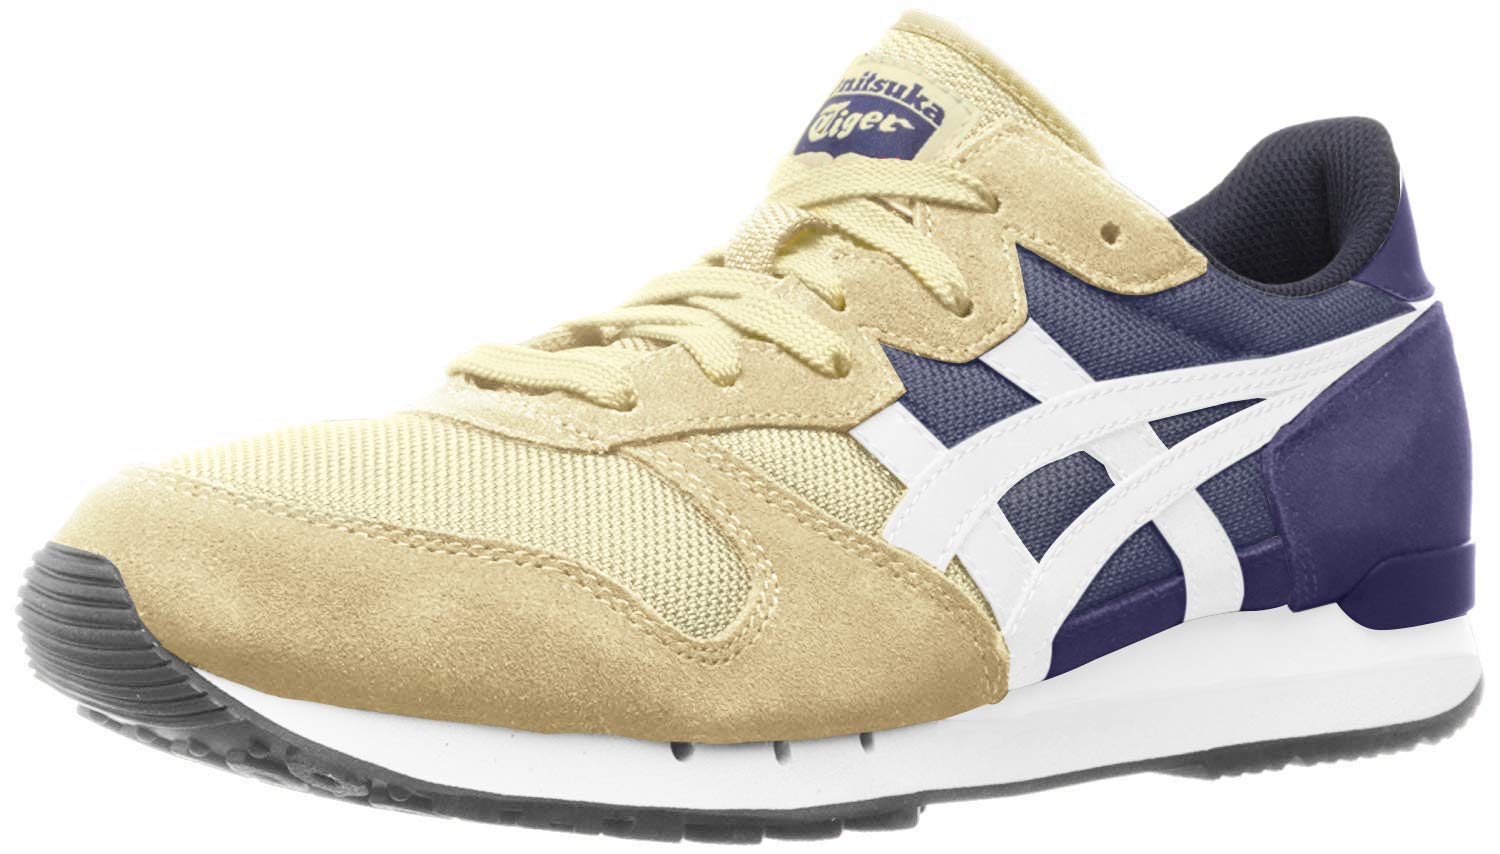 onitsuka tiger by asics alvarado india ink/orange